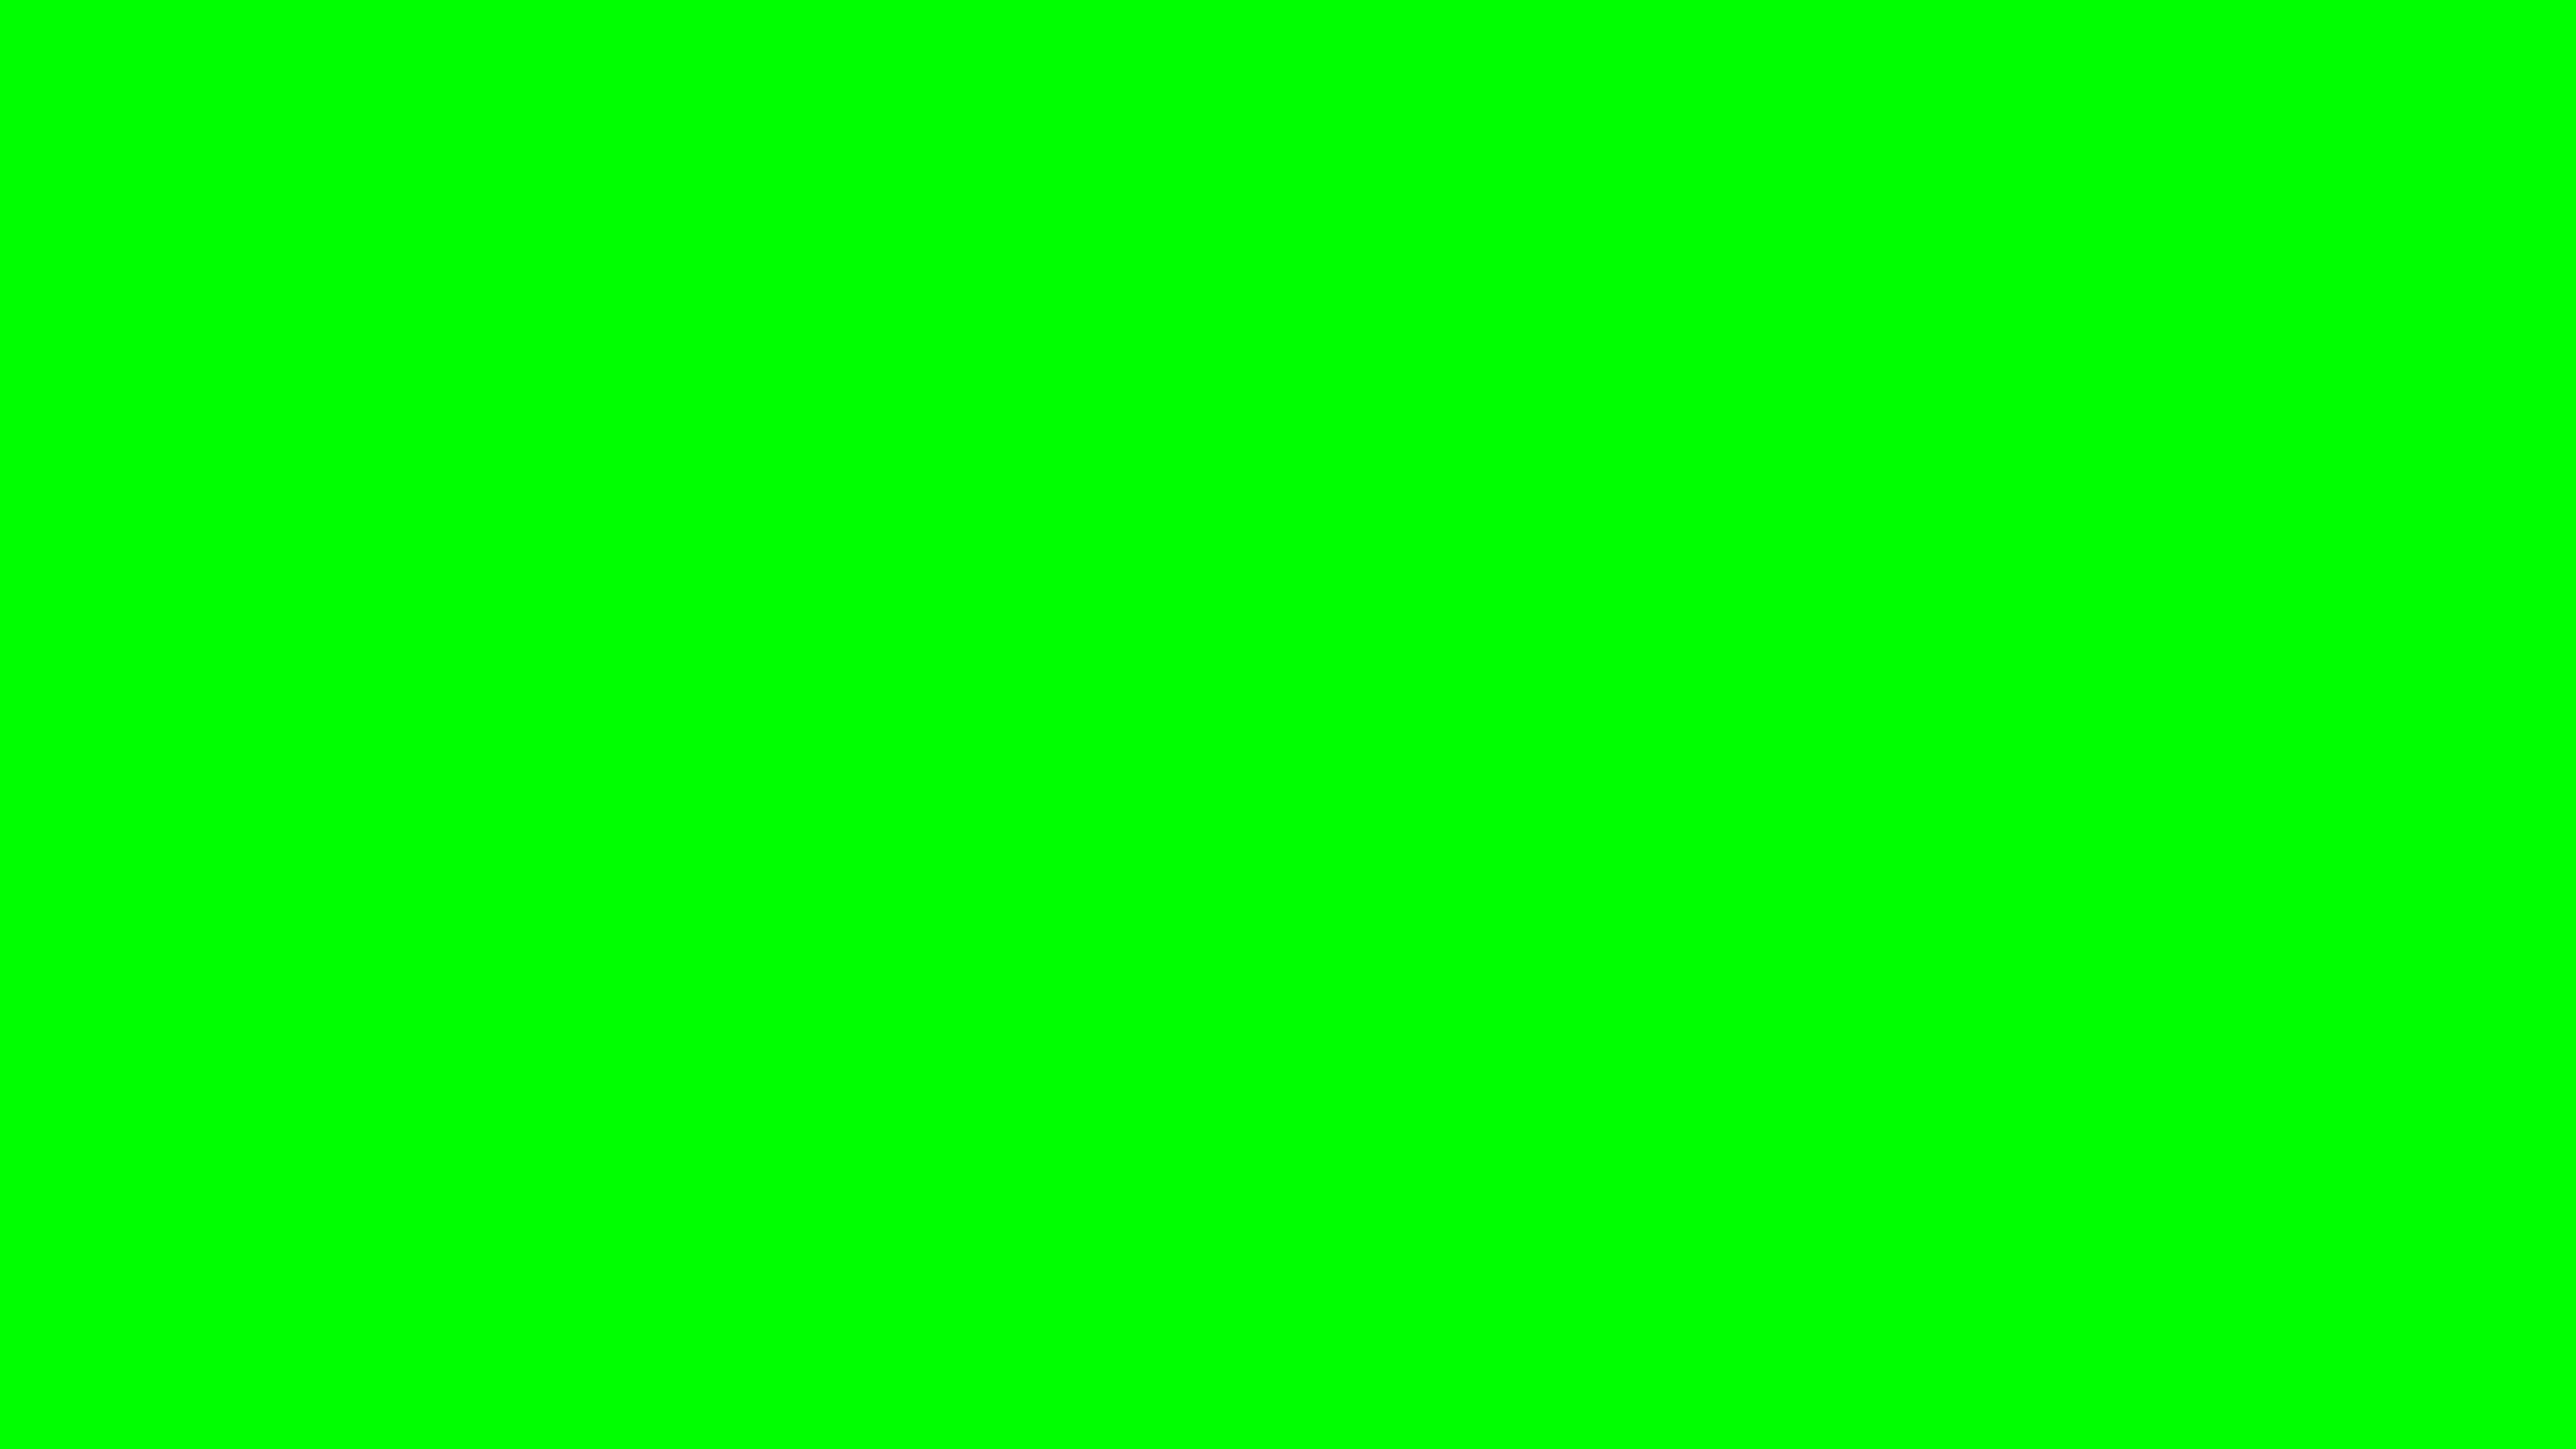 5120x2880 Green X11 Gui Green Solid Color Background